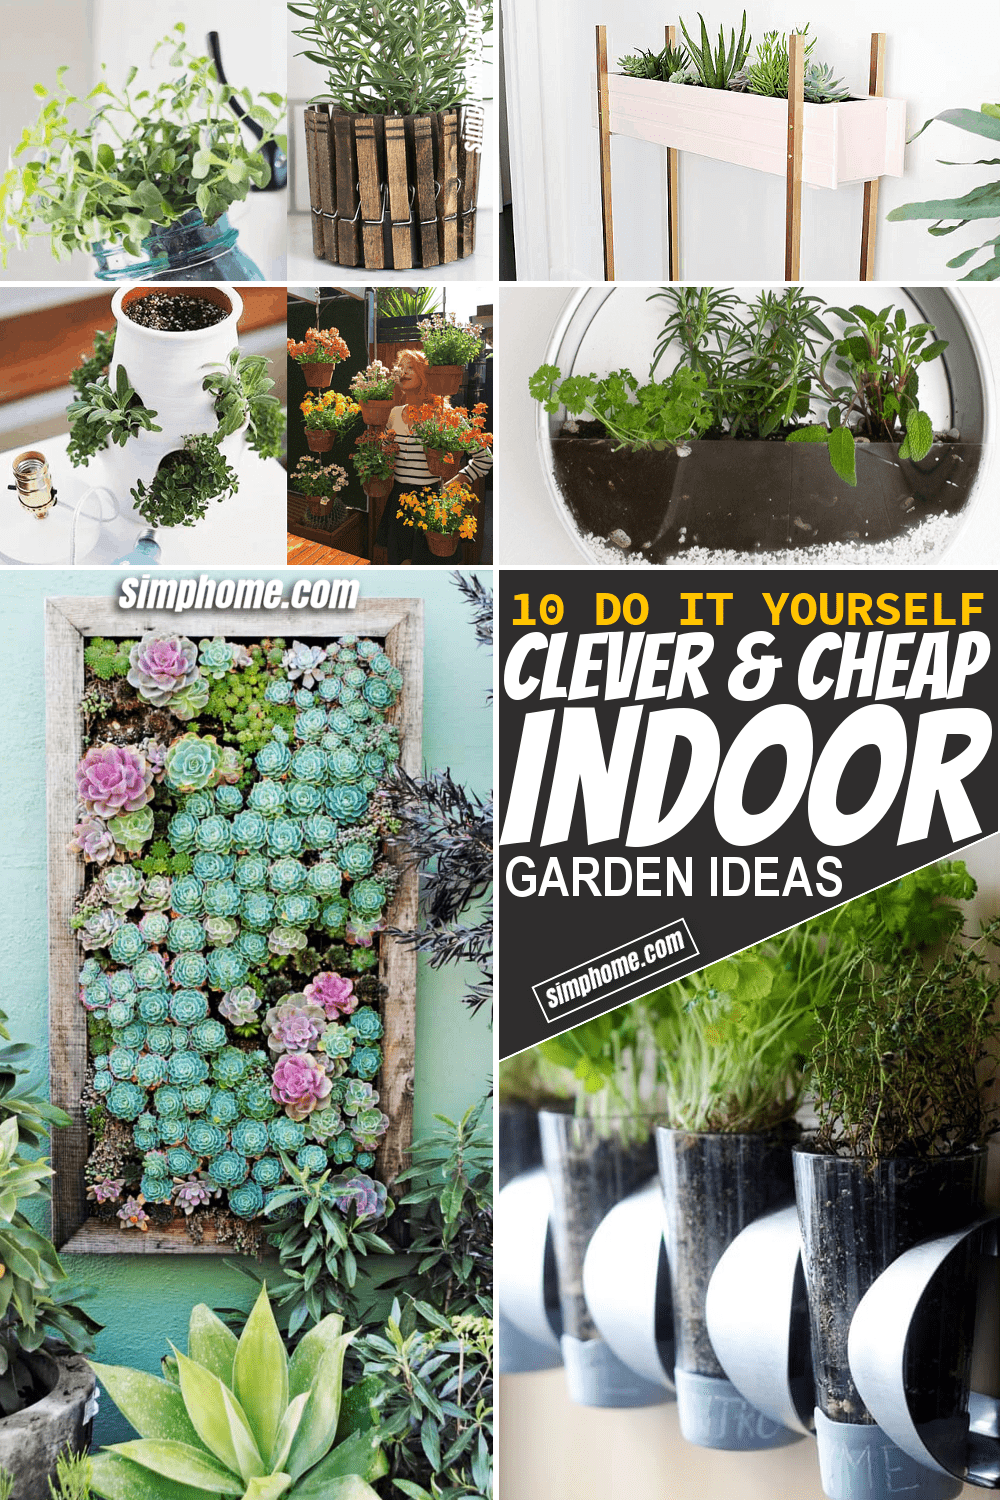 Simphome.com 10 Clever and Cheap Indoor Garden Ideas Thumbnail Video